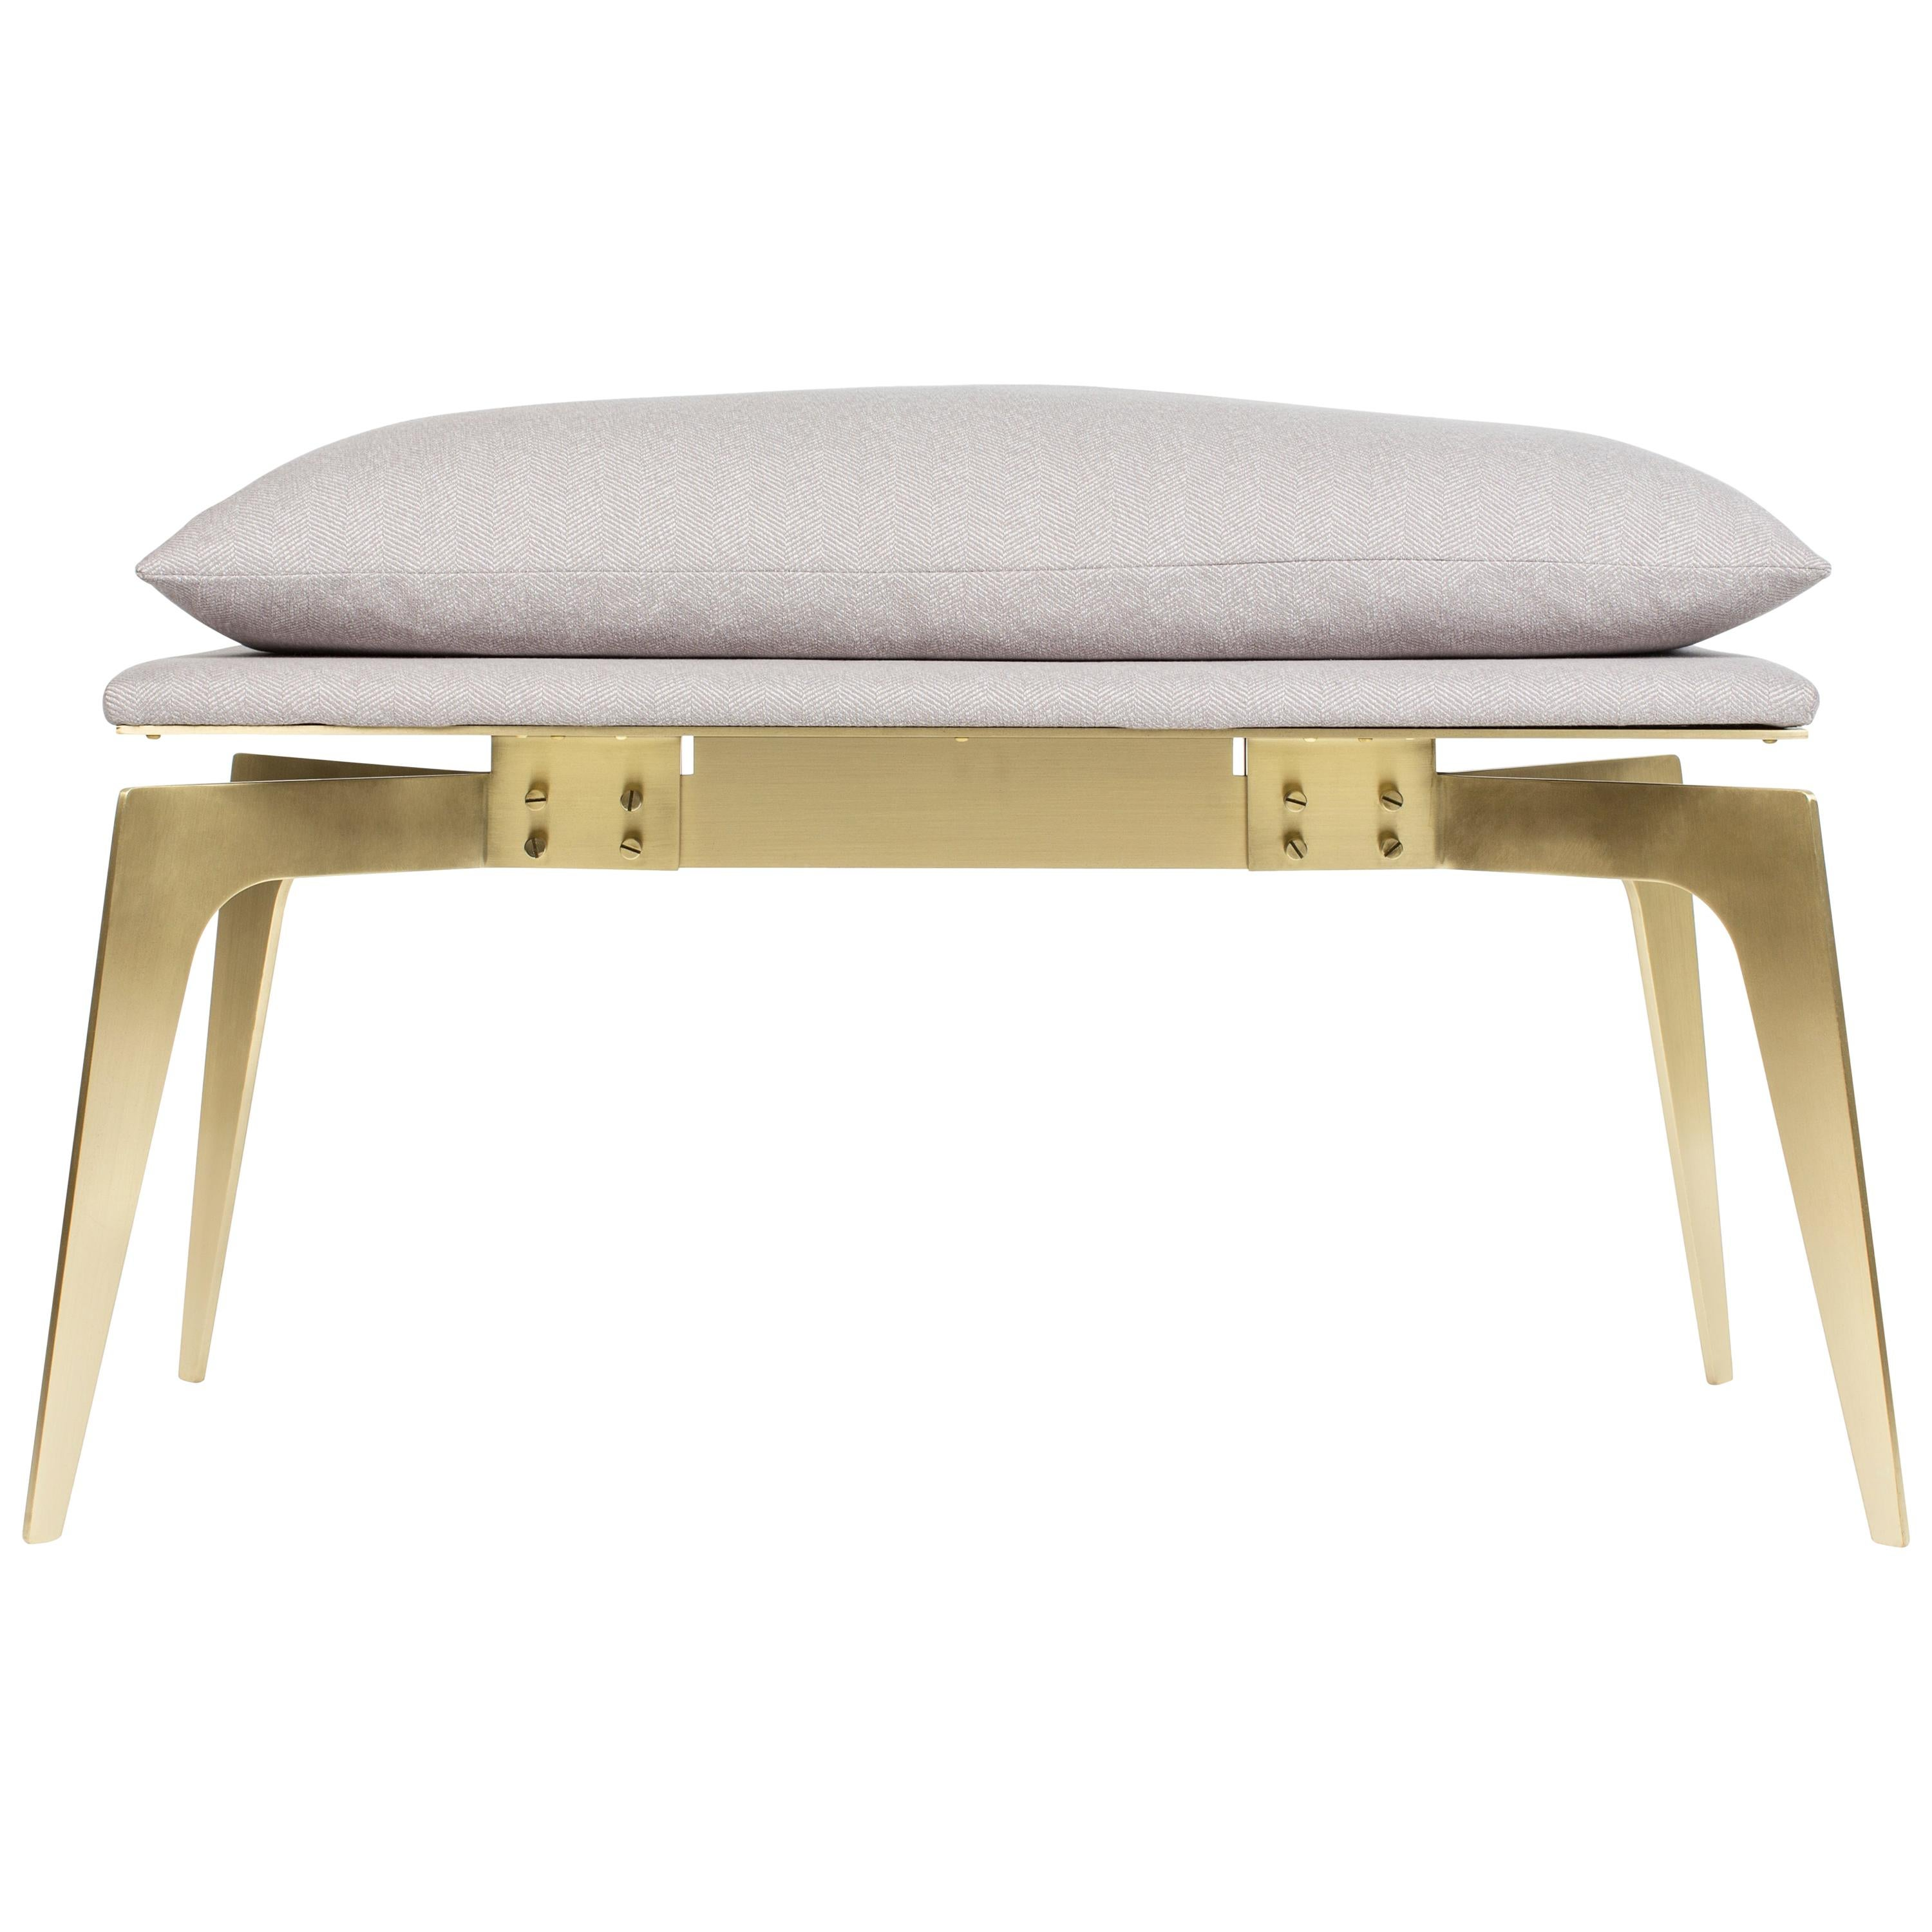 Short Prong Bench in Satin Brass Base with Upholstery by Gabriel Scott